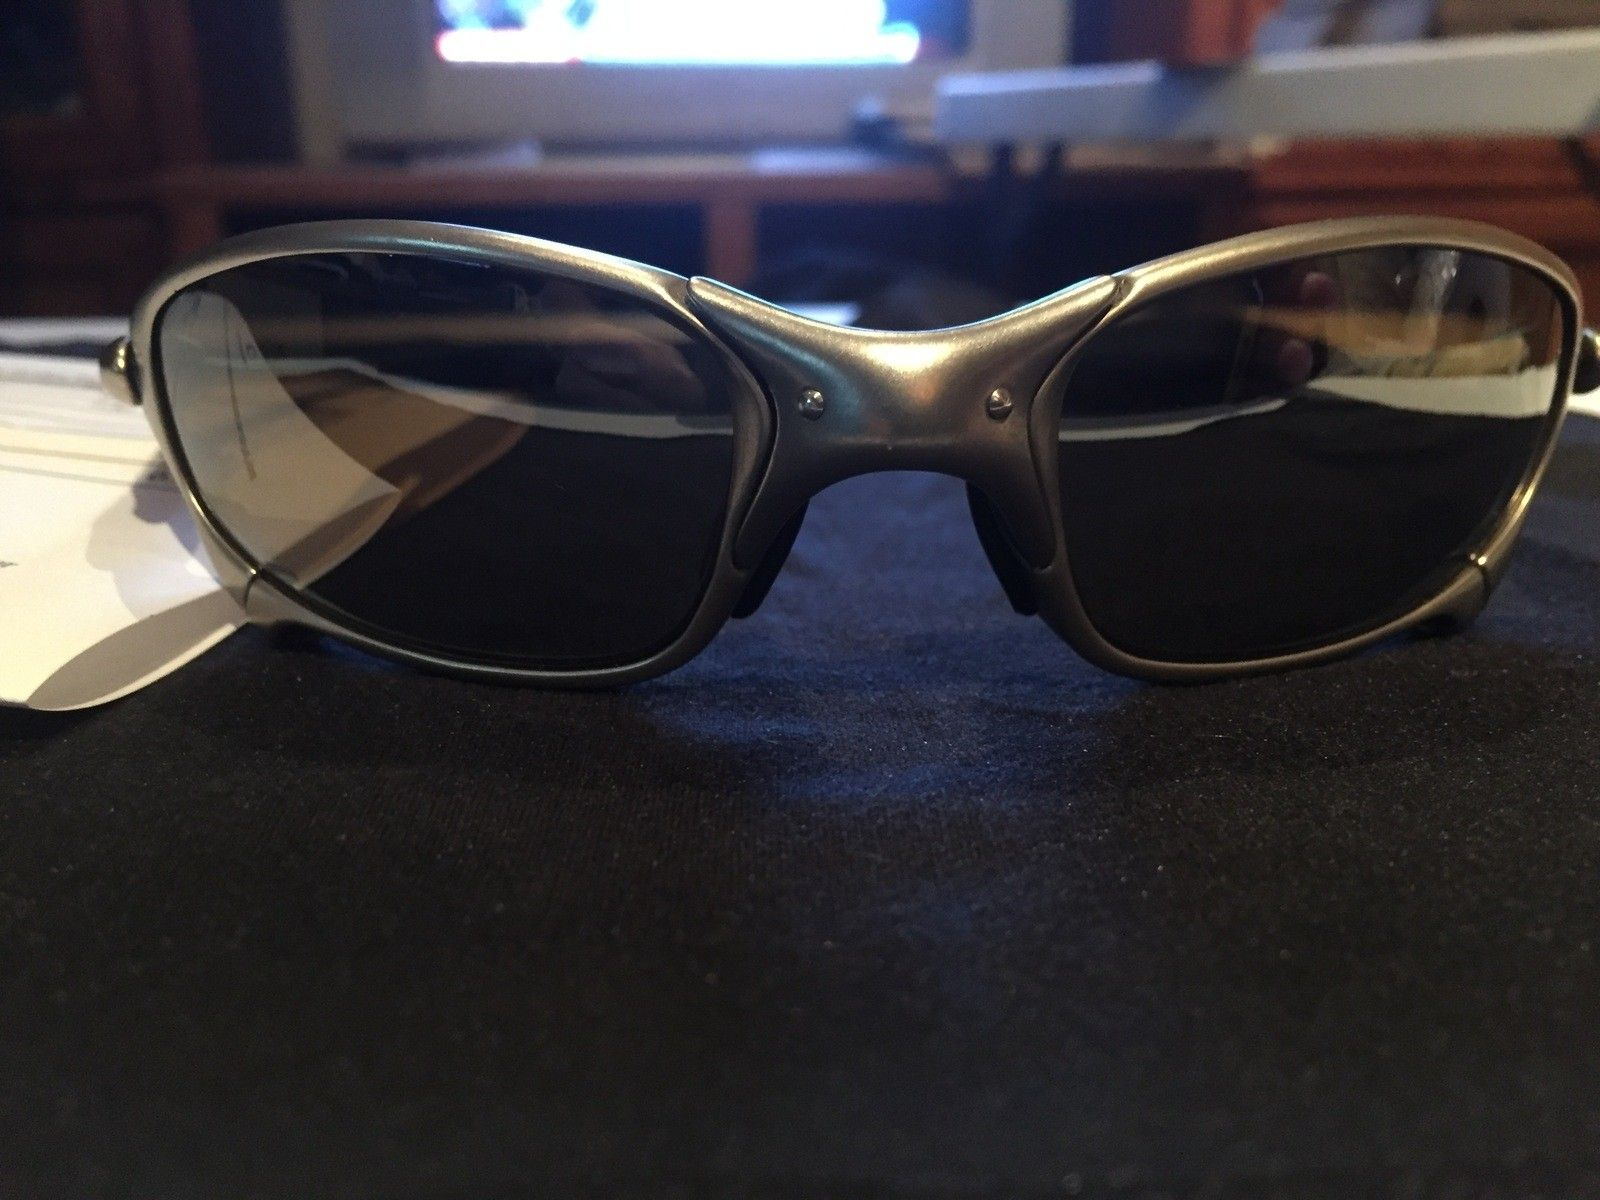 Juliet serial # plasma titanium iridium polarized - image.jpeg